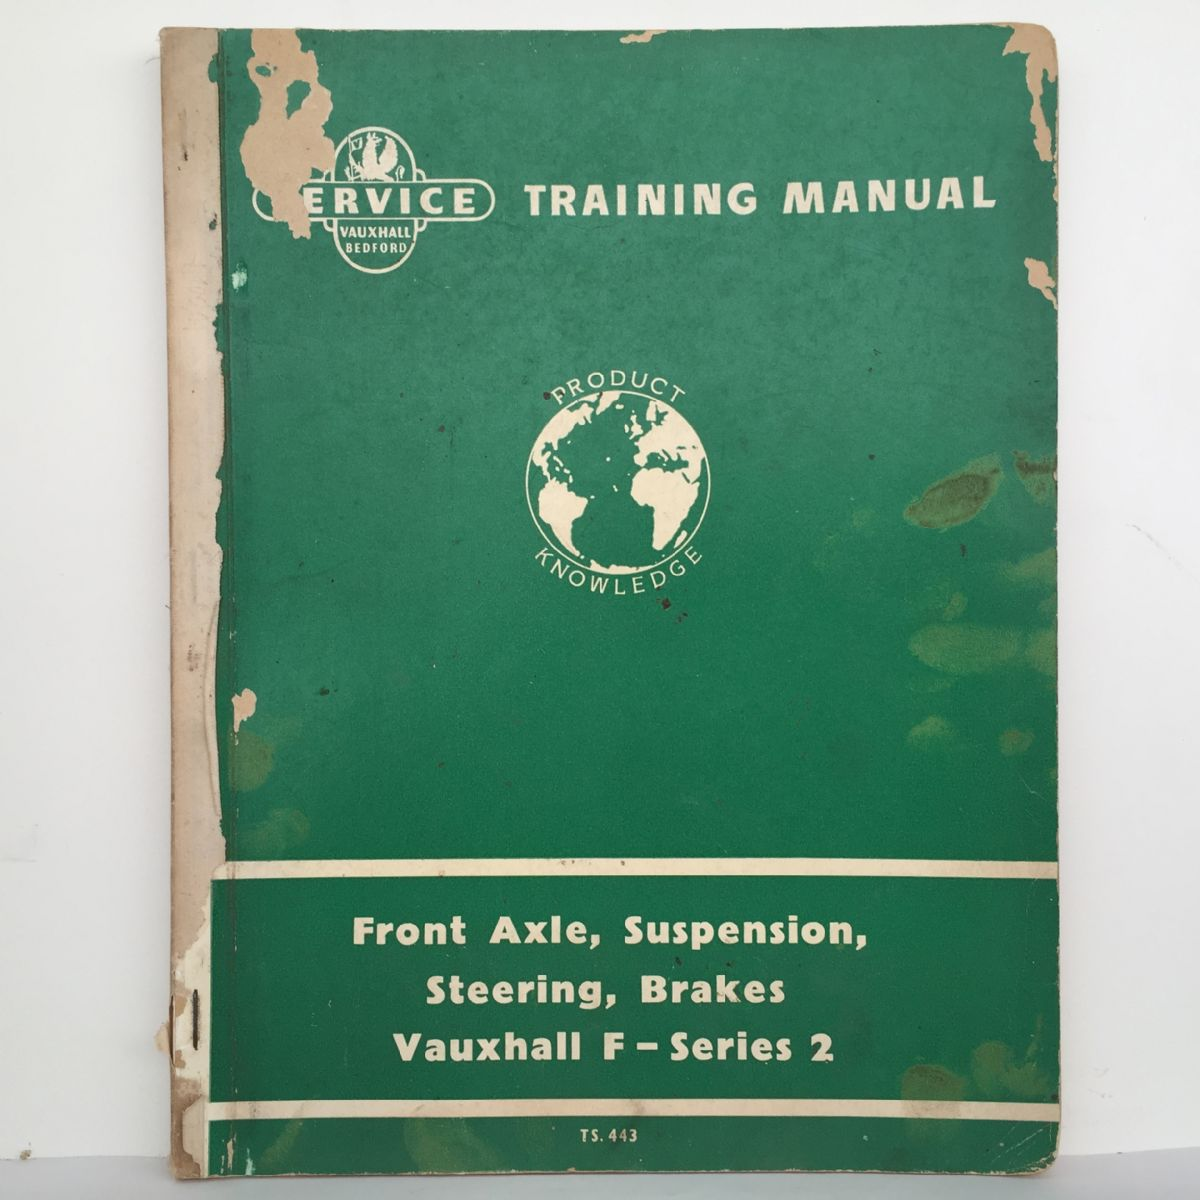 Vauxhall Bedford Service Training Manual